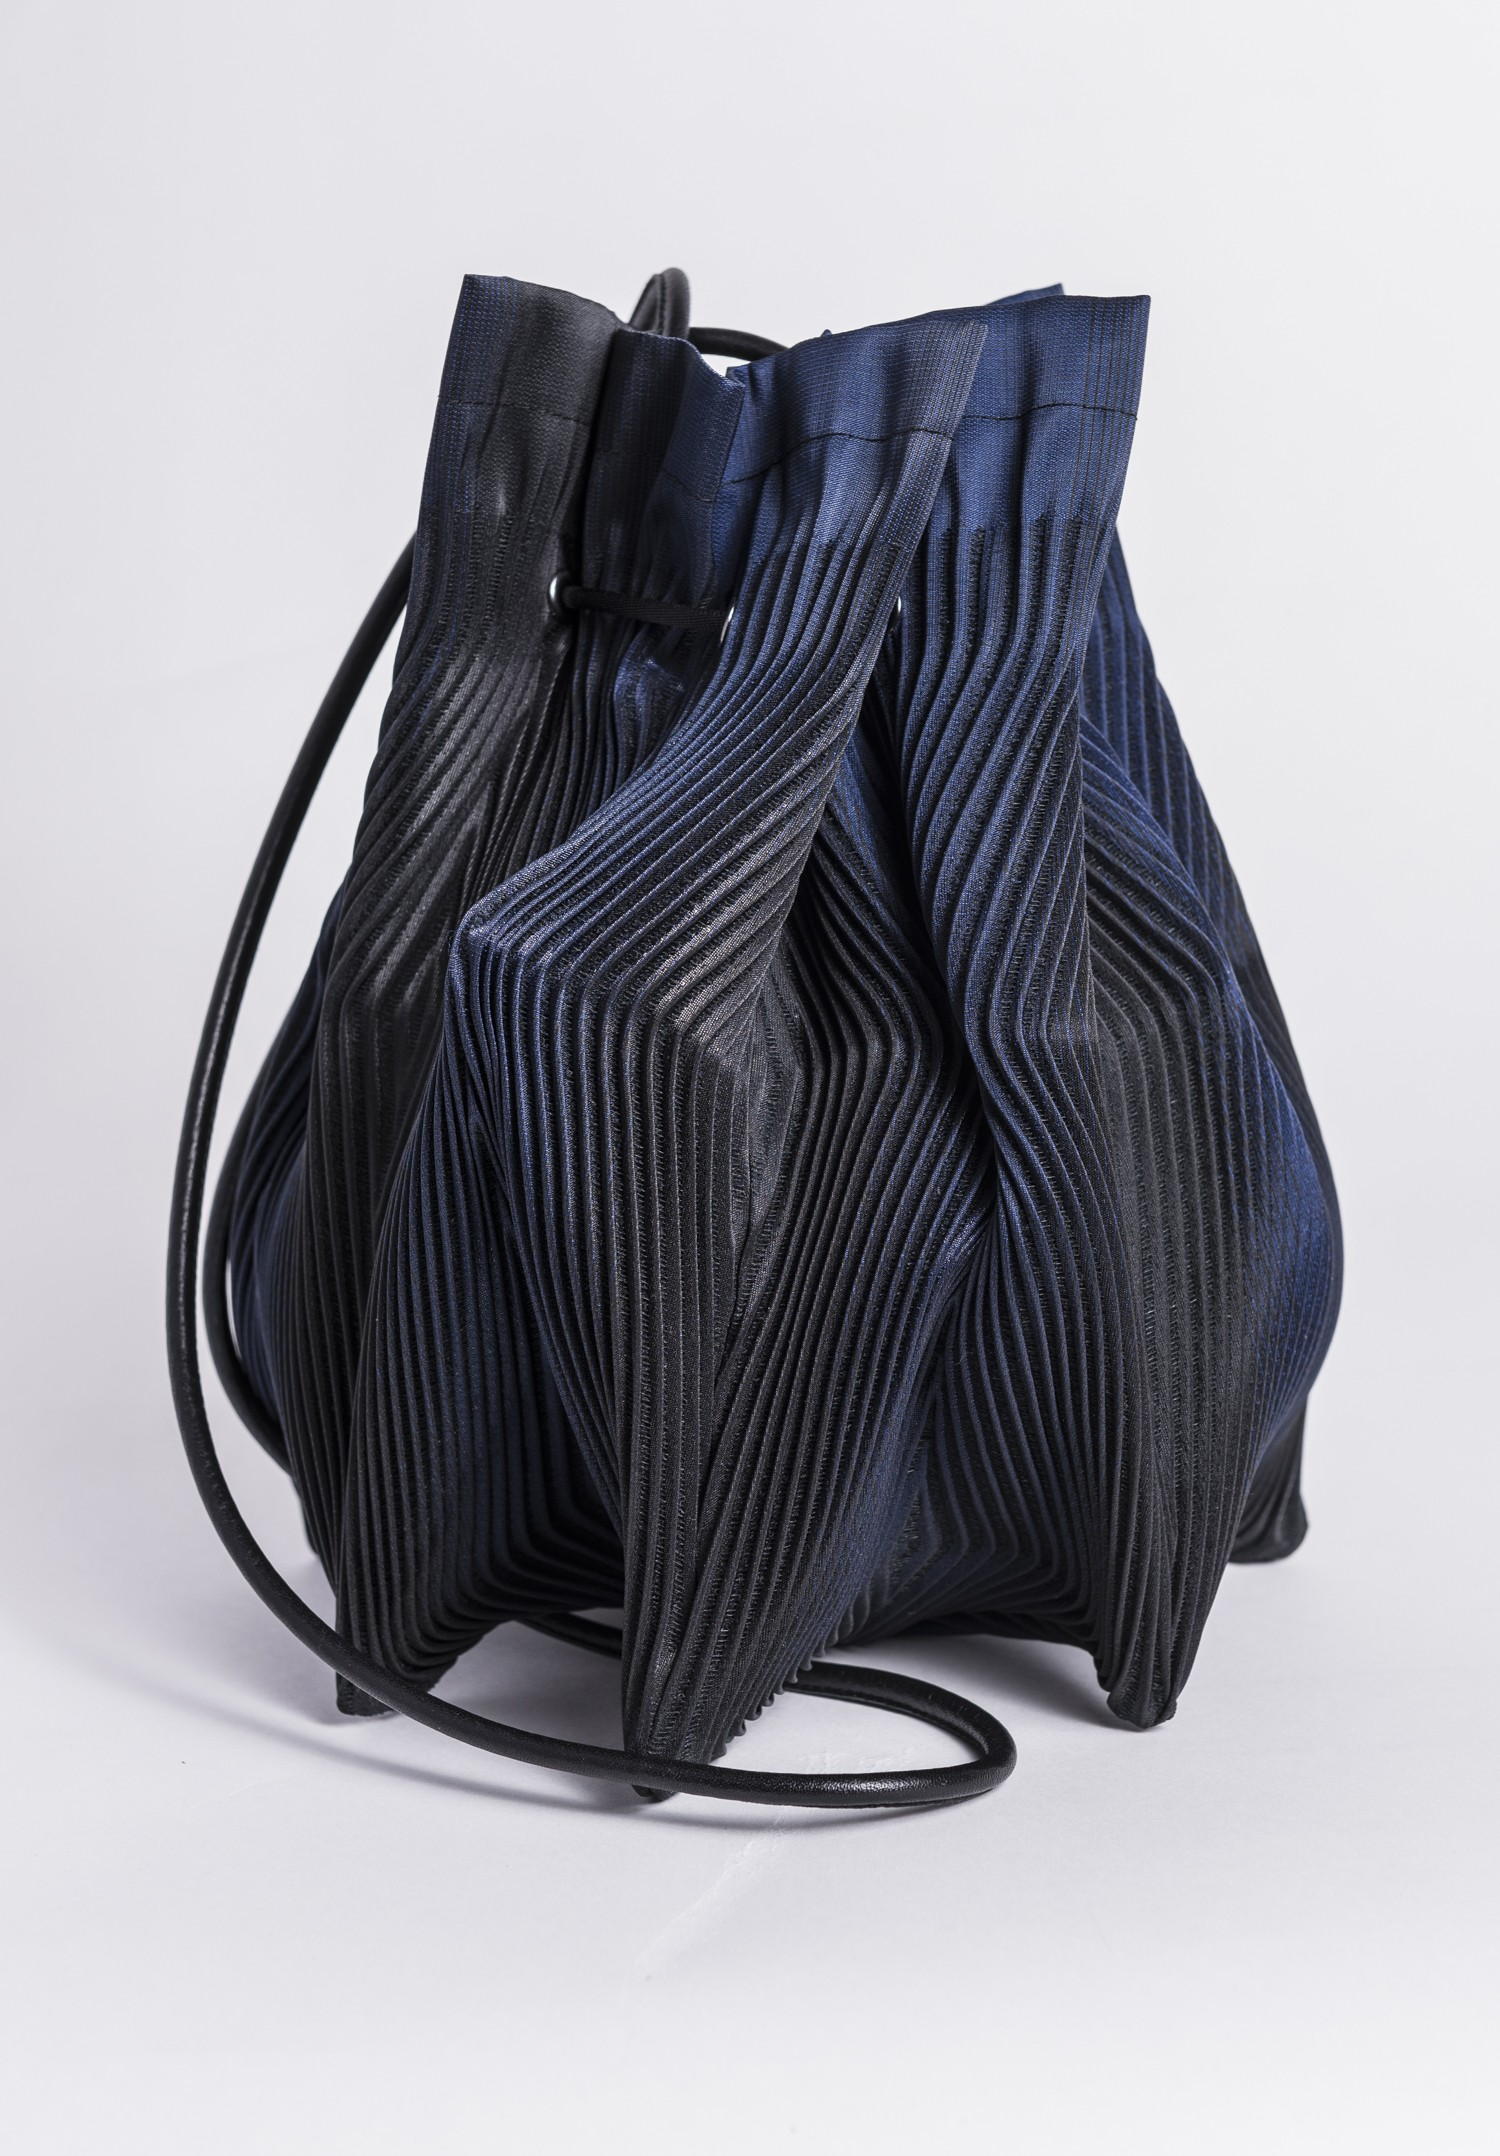 Issey Miyake Pouch Bag